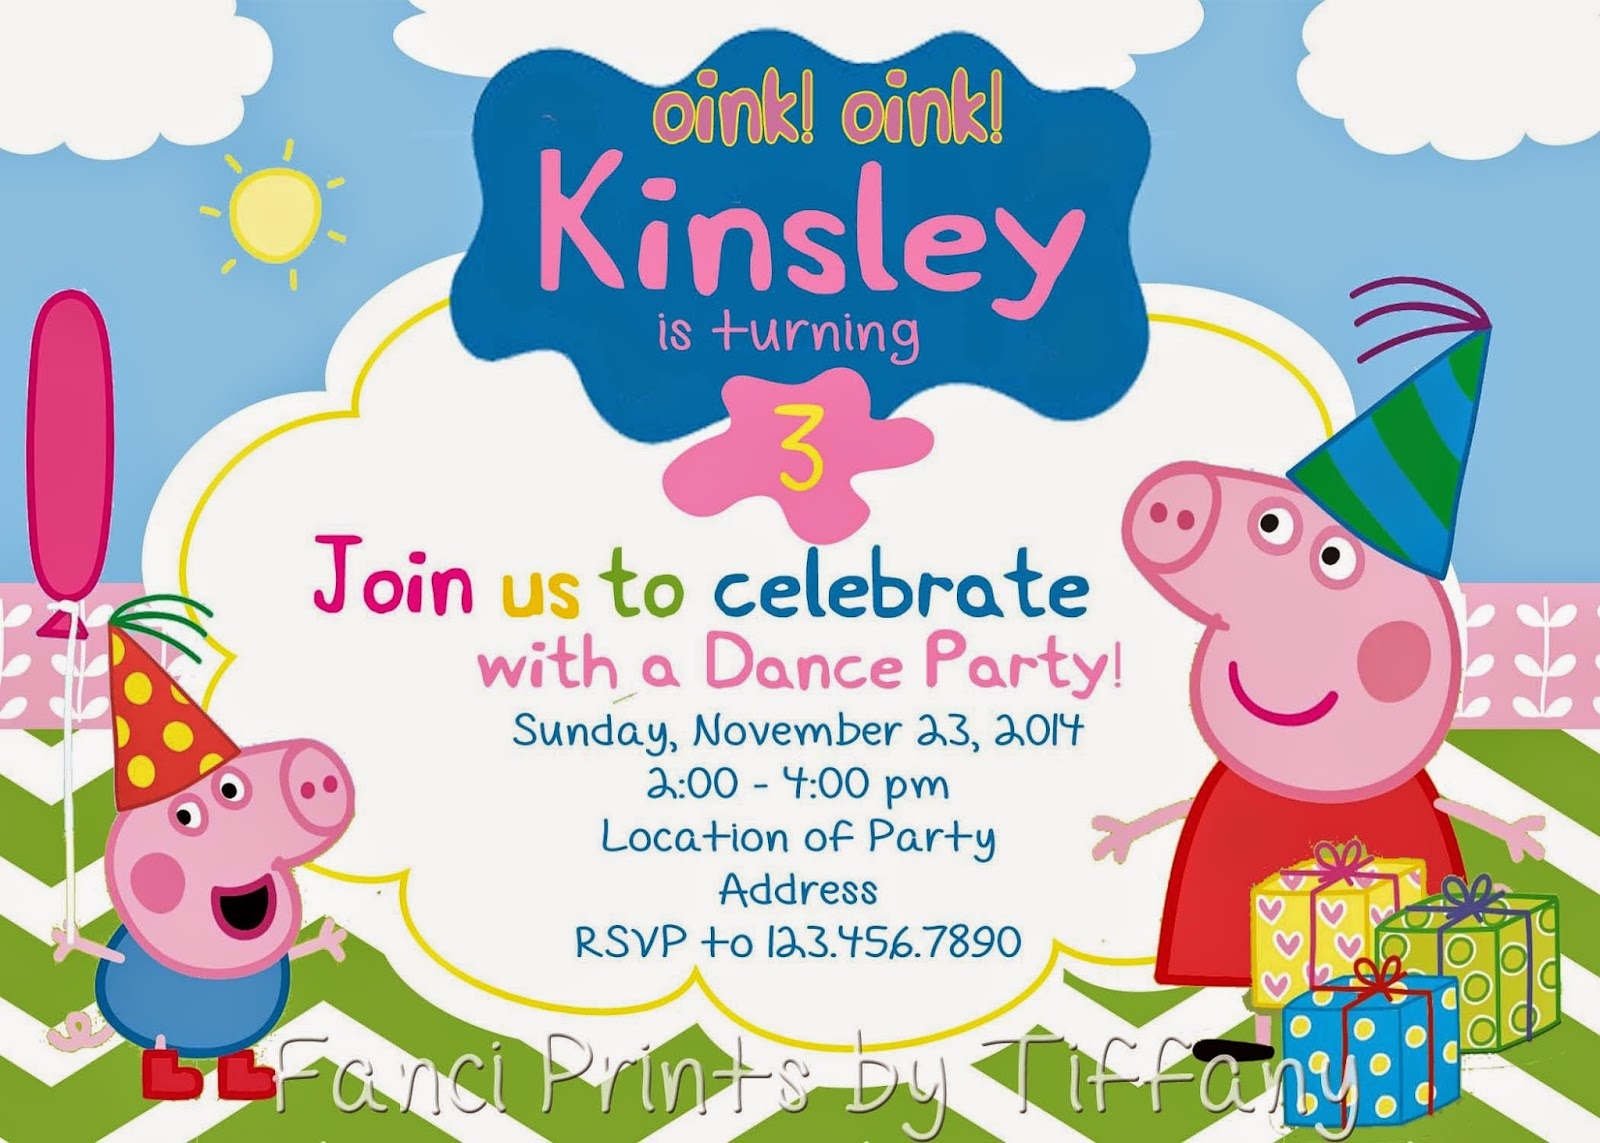 Fanci Prints by Tiffany: Birthday Party Invitations